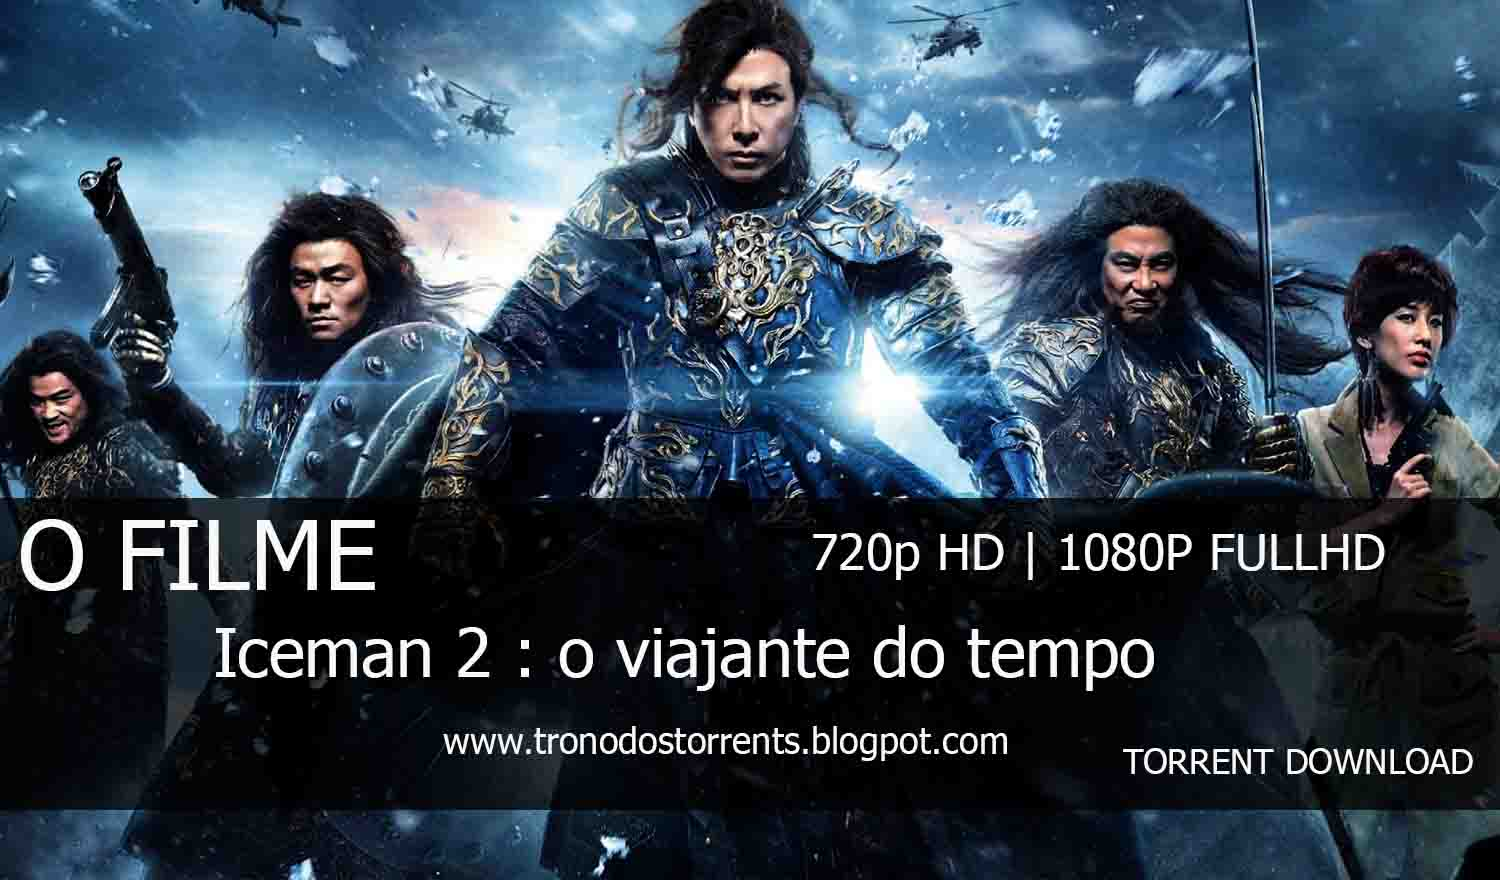 [ Torrent Filme ]  Download - Iceman 2 : O Viajante do Tempo – 720p | 1080p Dual Áudio 5.1 , trono dos torrents, baixar filmes em utorrent, download de filmes